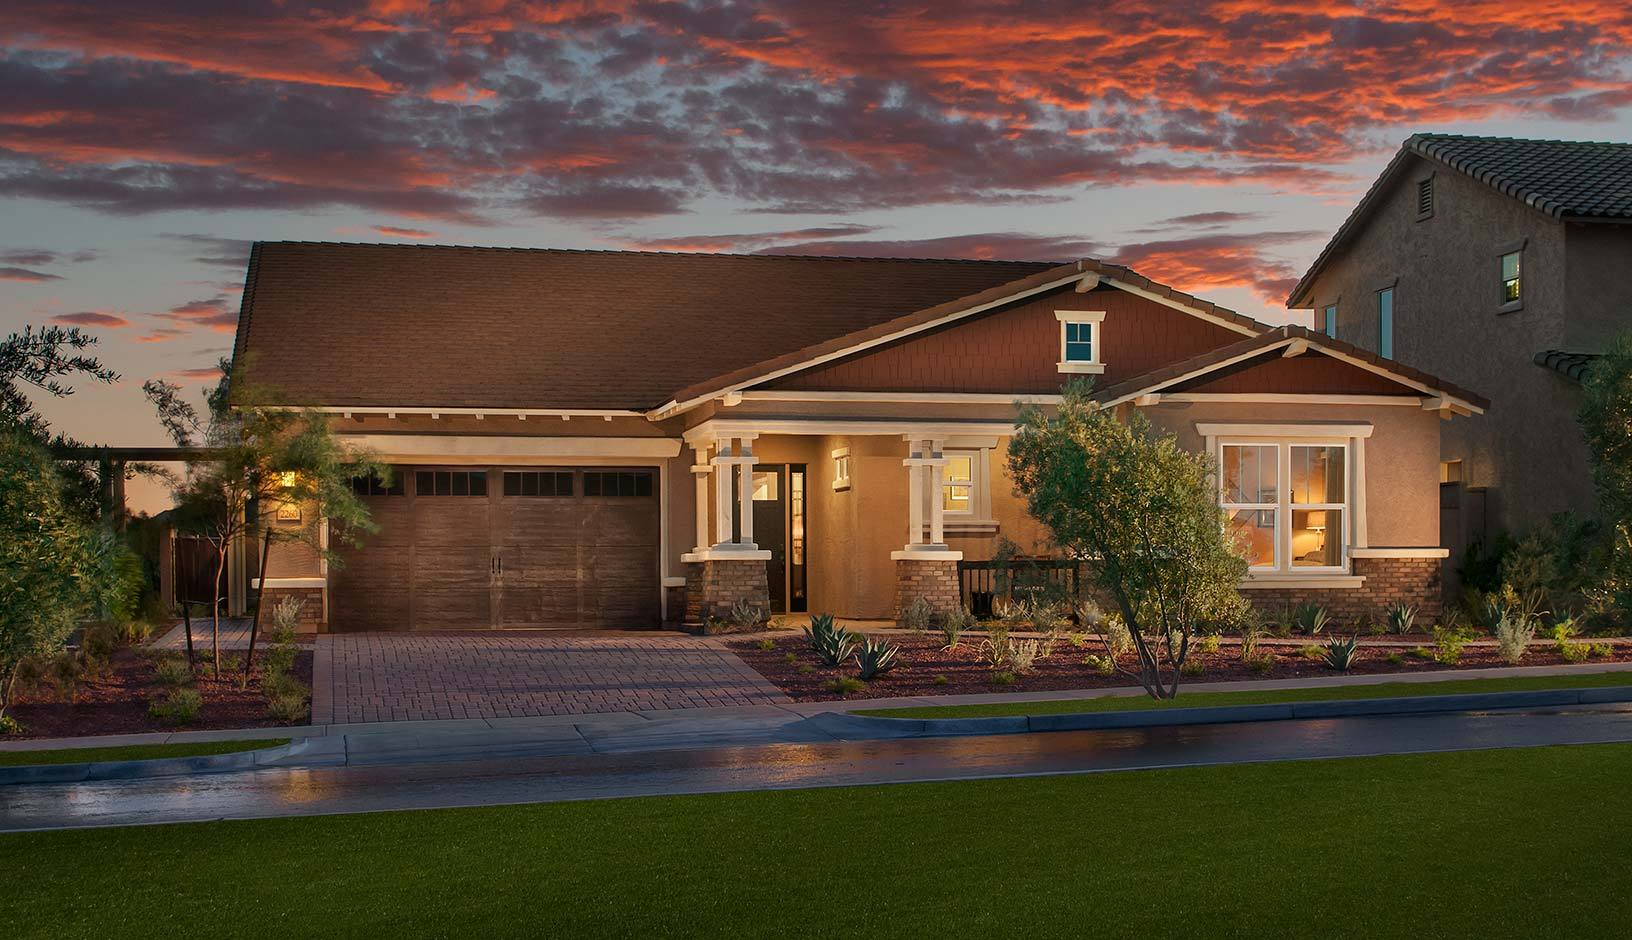 Single Family for Sale at Primrose 2268 N. Park Street Buckeye, Arizona 85396 United States